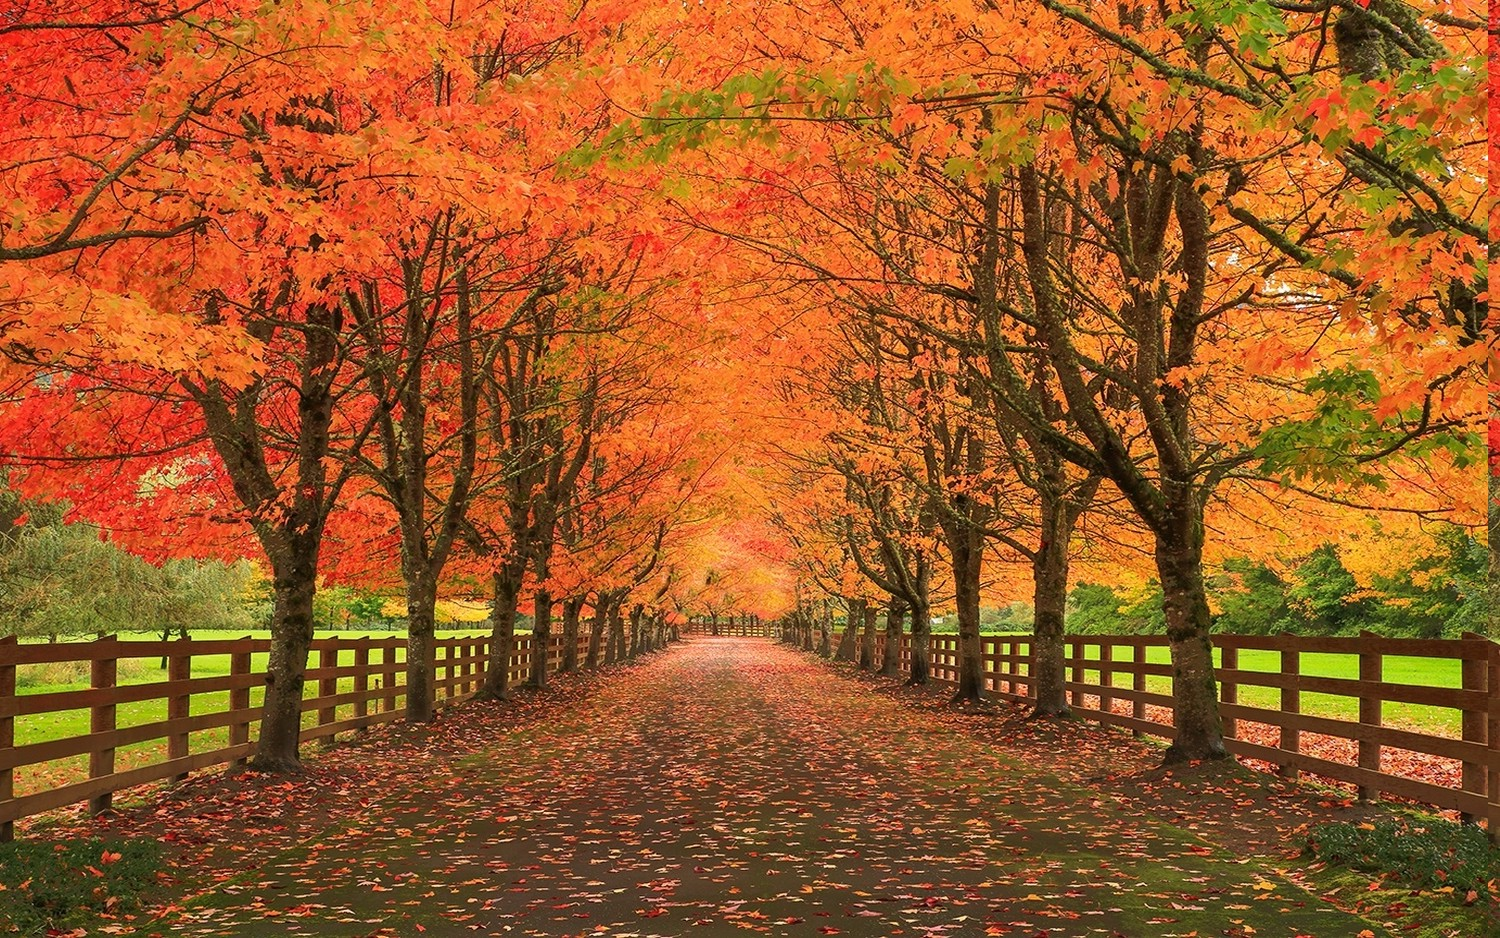 Falling Leaves Live Wallpaper Nature Landscape Fall Leaves Road Fence Trees Grass